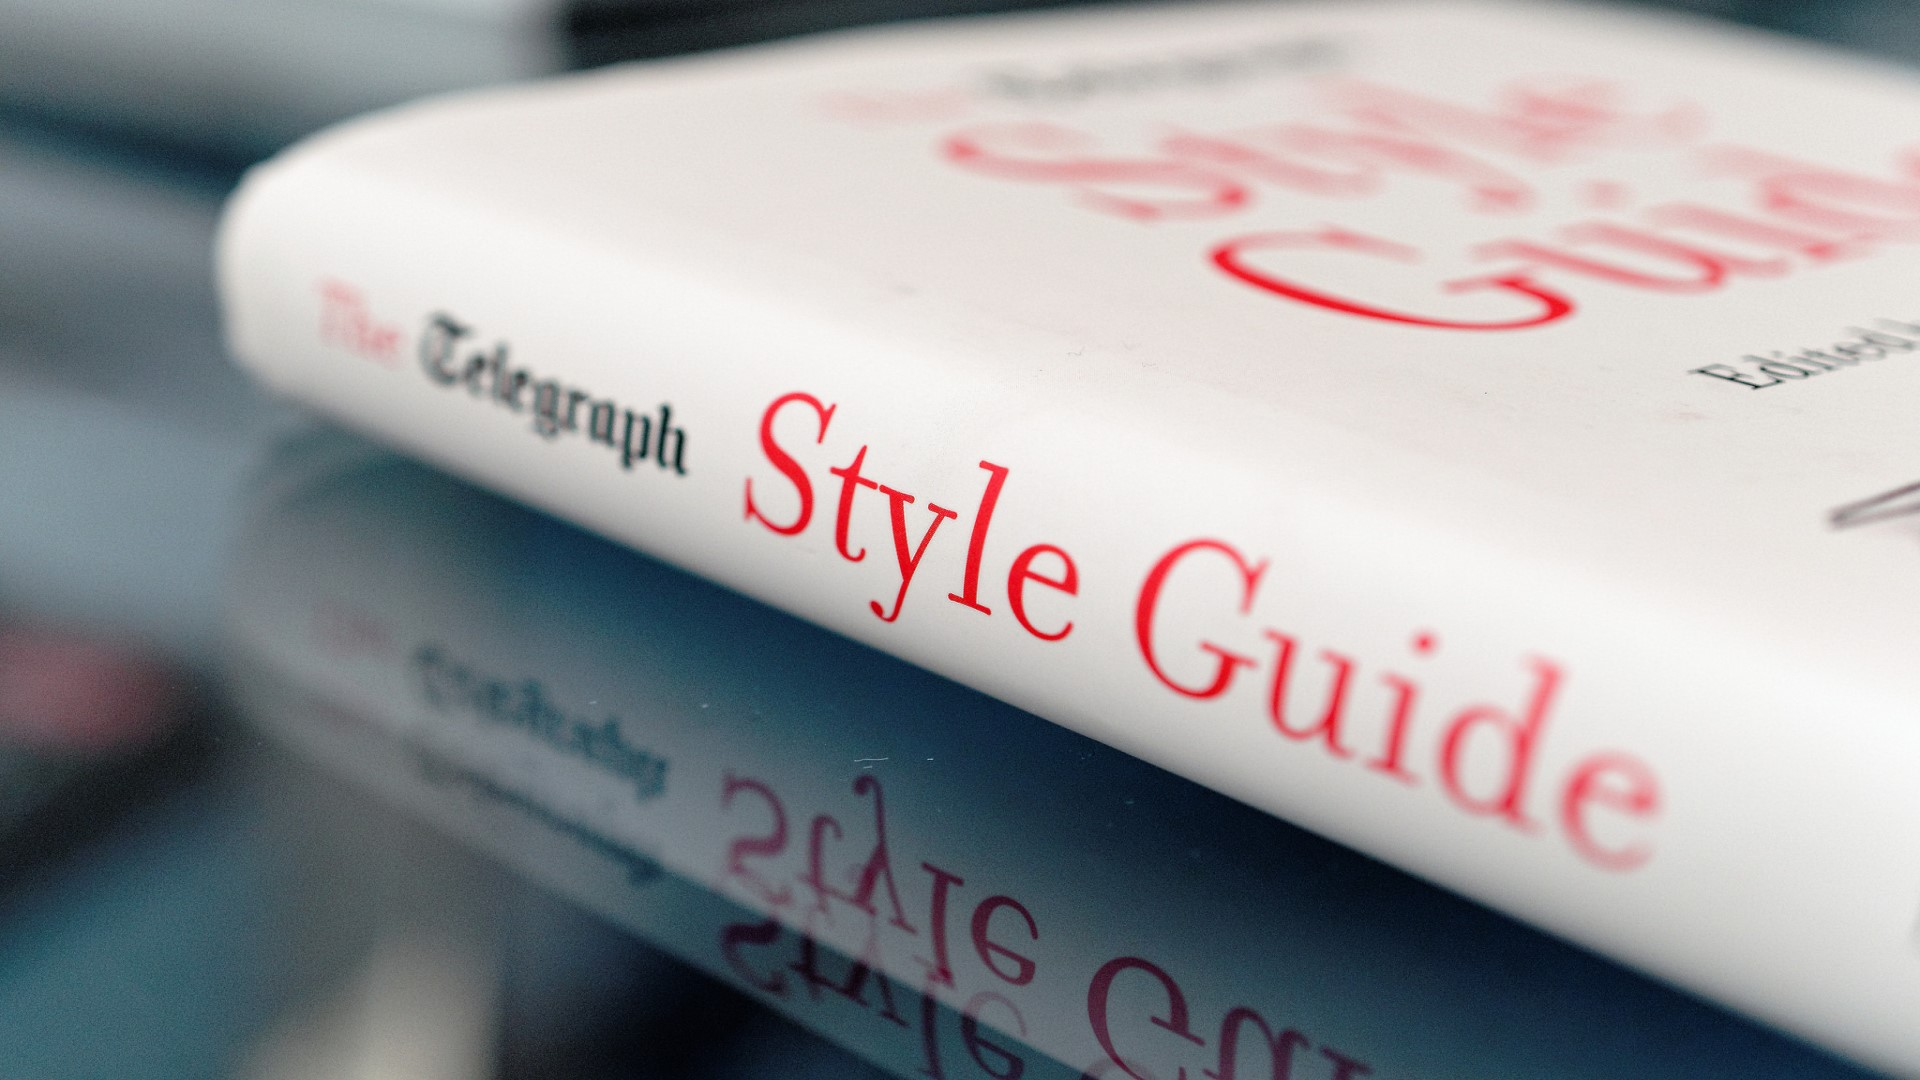 The style is a part of your Brand Identity.